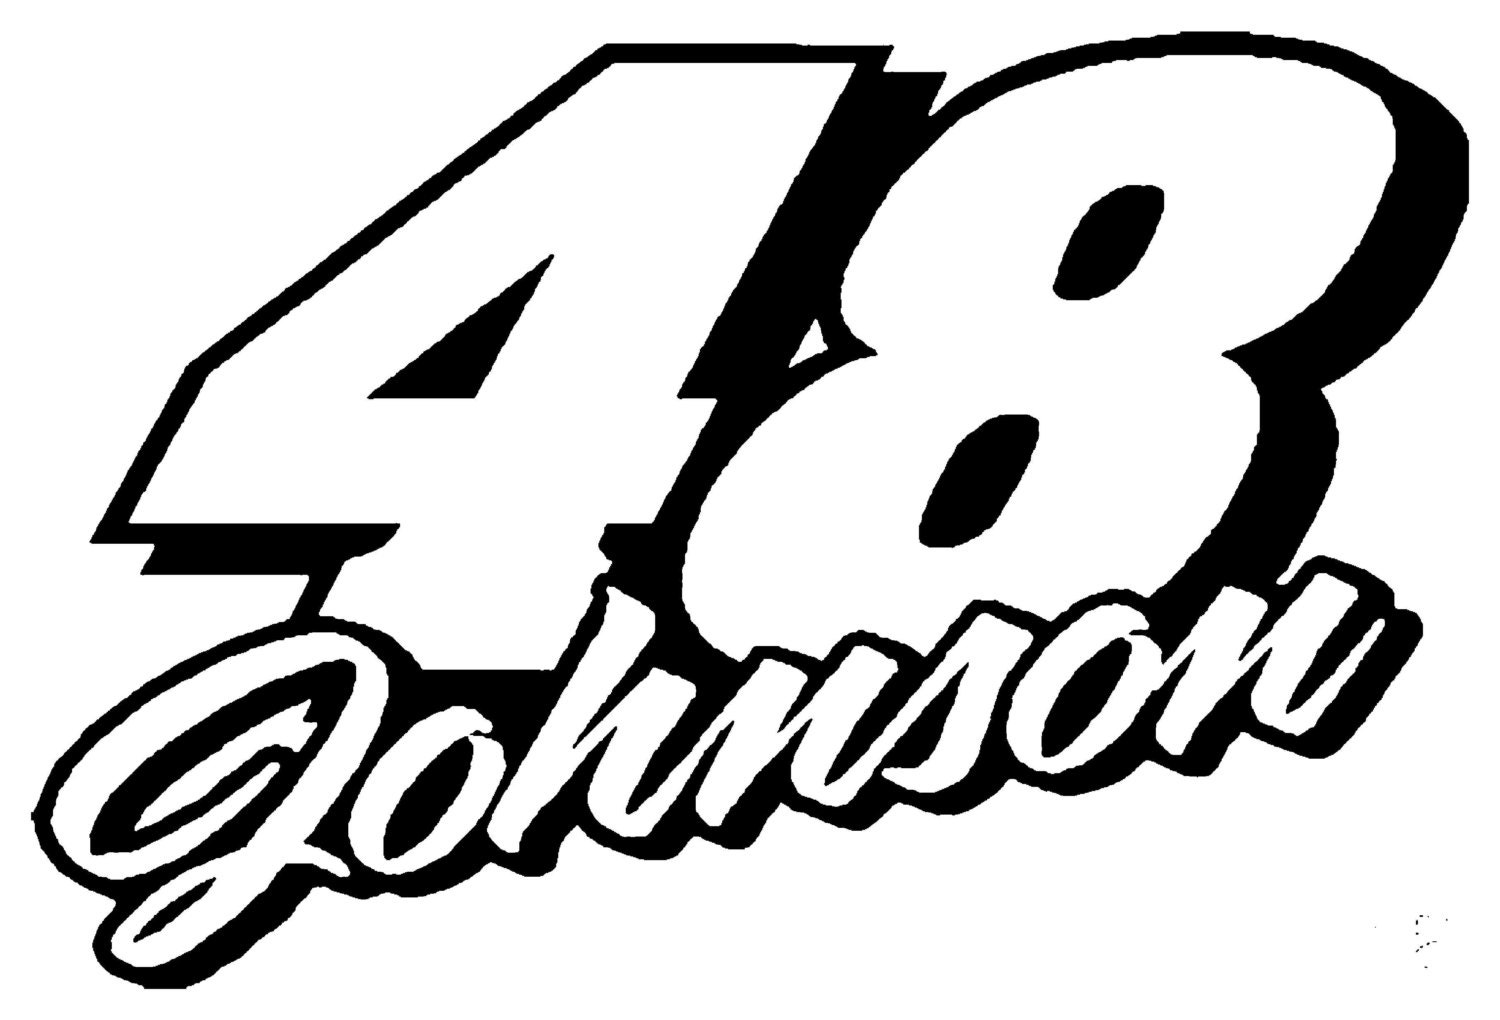 Baseball Bat Dimensions Drawing also Race Car Drawing Images in addition Minachan Stealing Yasha Stuff 194556874 furthermore 1614 also Jimmie Johnson Decal Free Shipping. on nascar canvas art